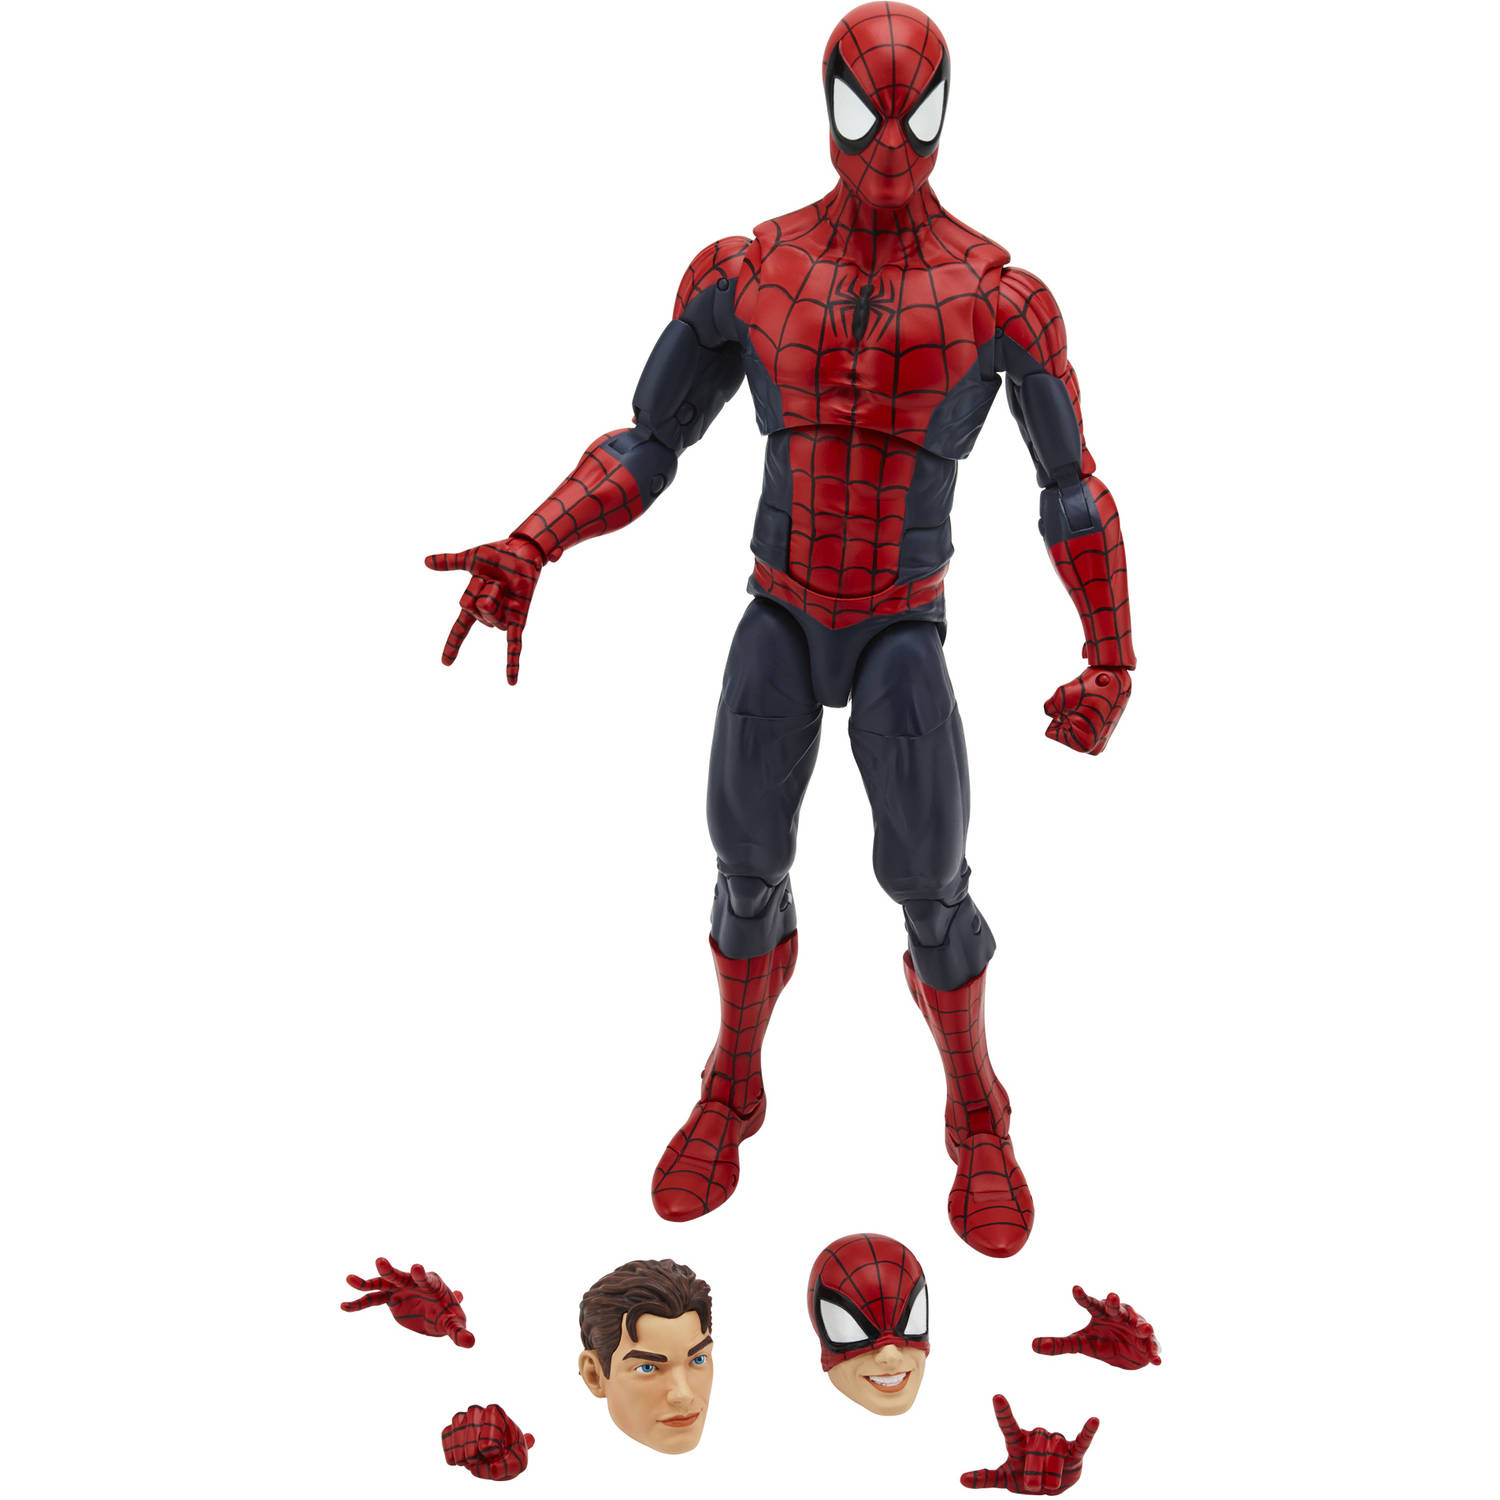 18 Inch Spider Man 2 Toy : Infinite earths new images of quot marvel legends spider